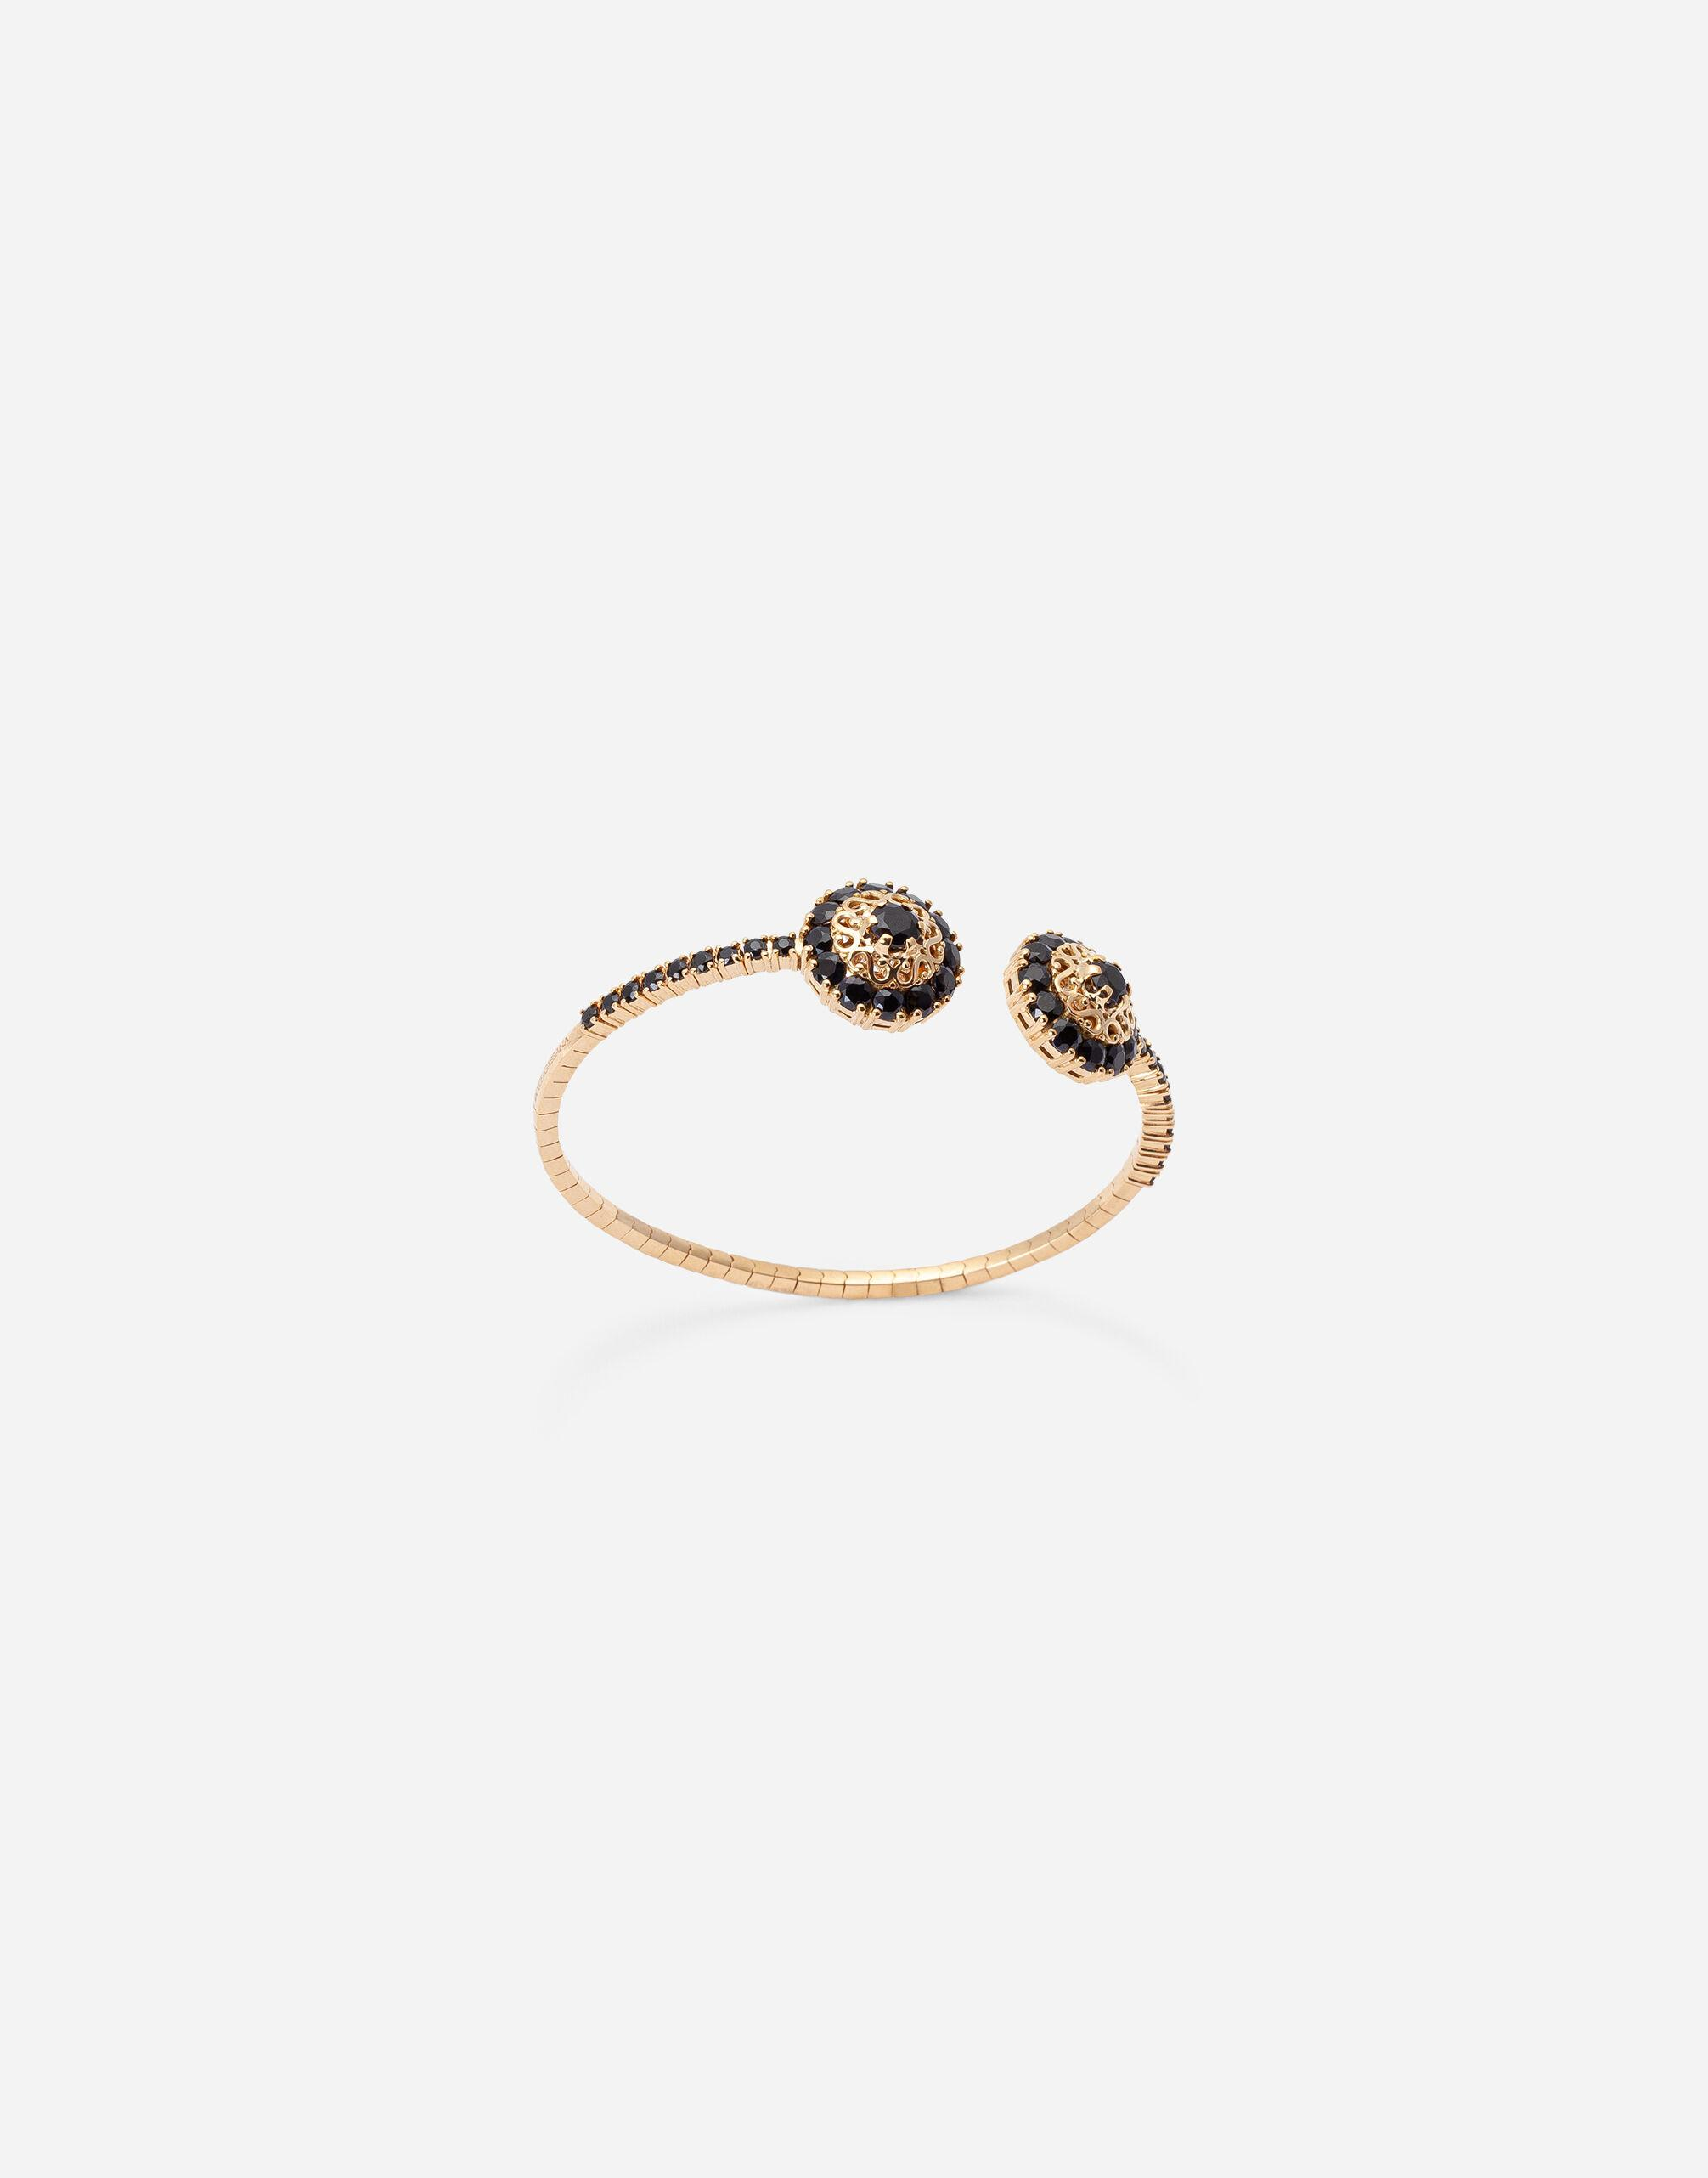 Family yellow gold bracelet with rosette motif and black sapphire